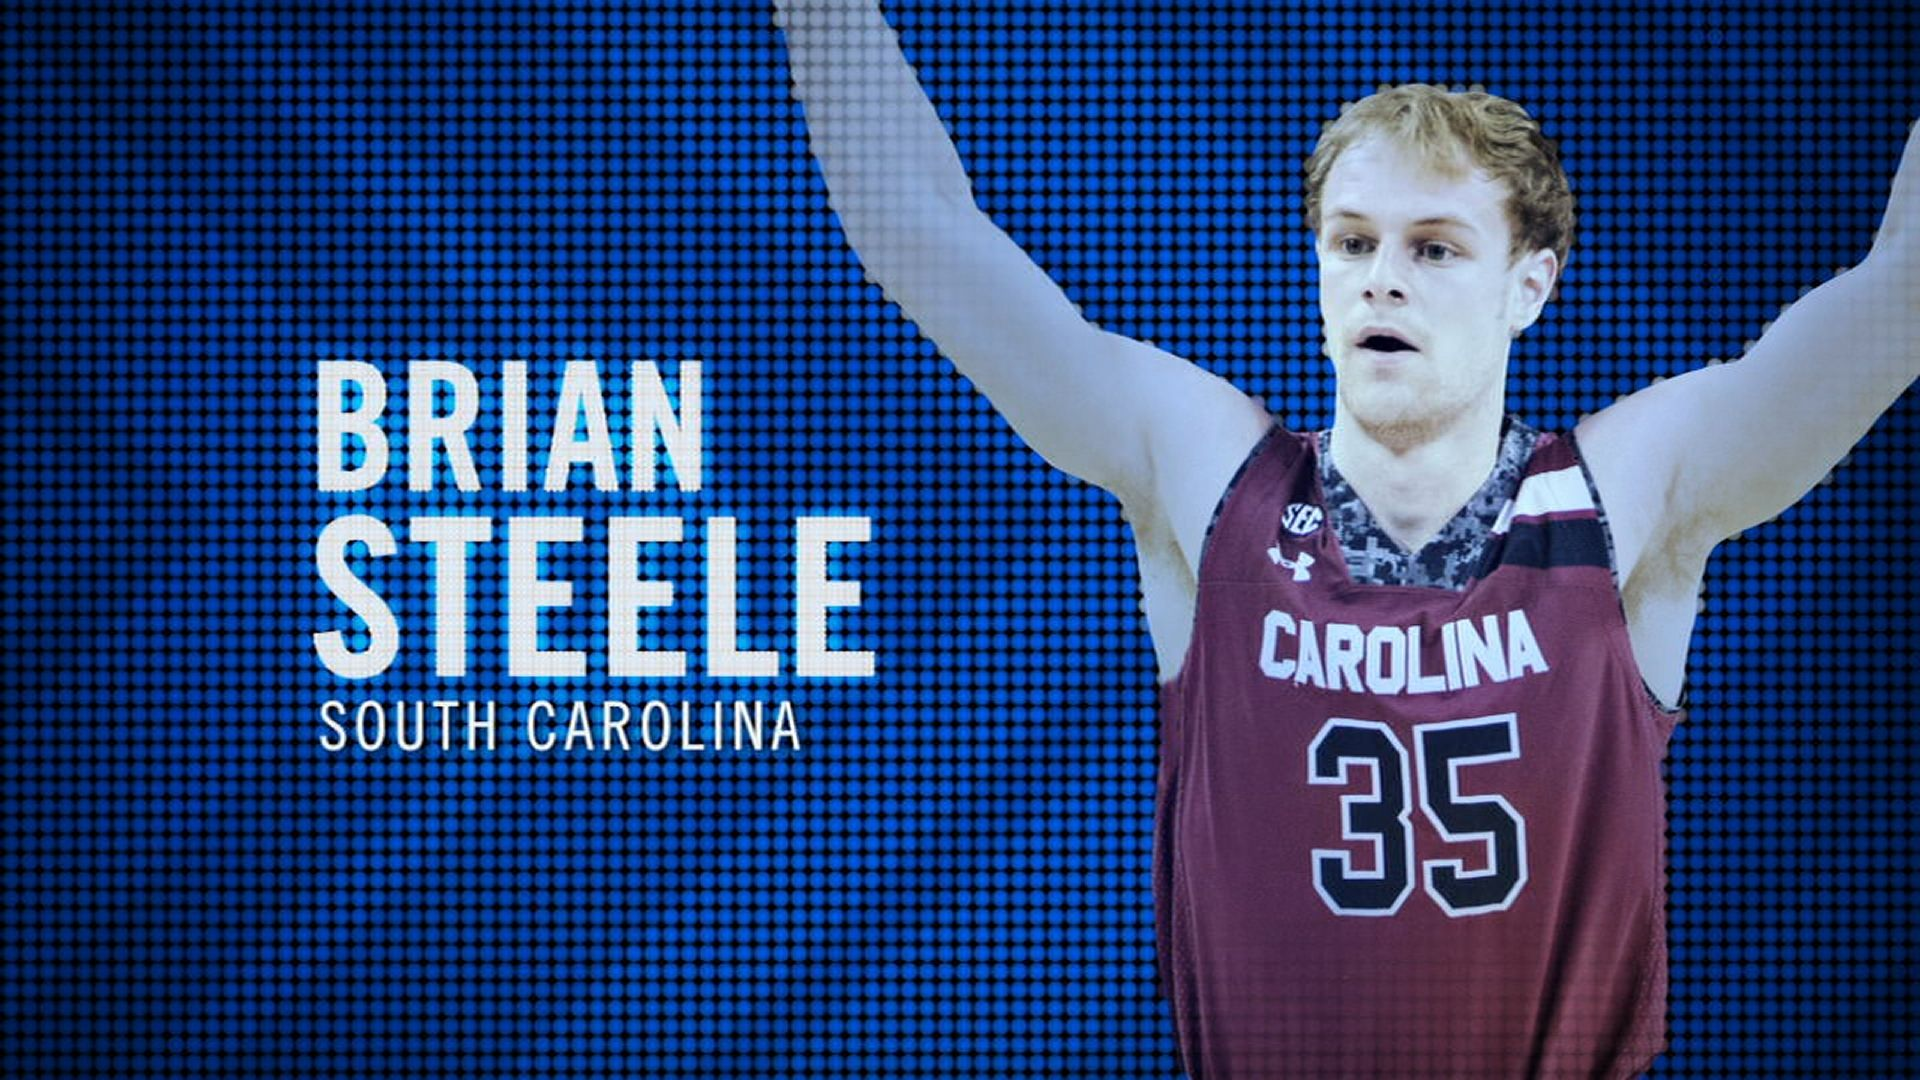 I am the SEC: South Carolina's Brian Steele